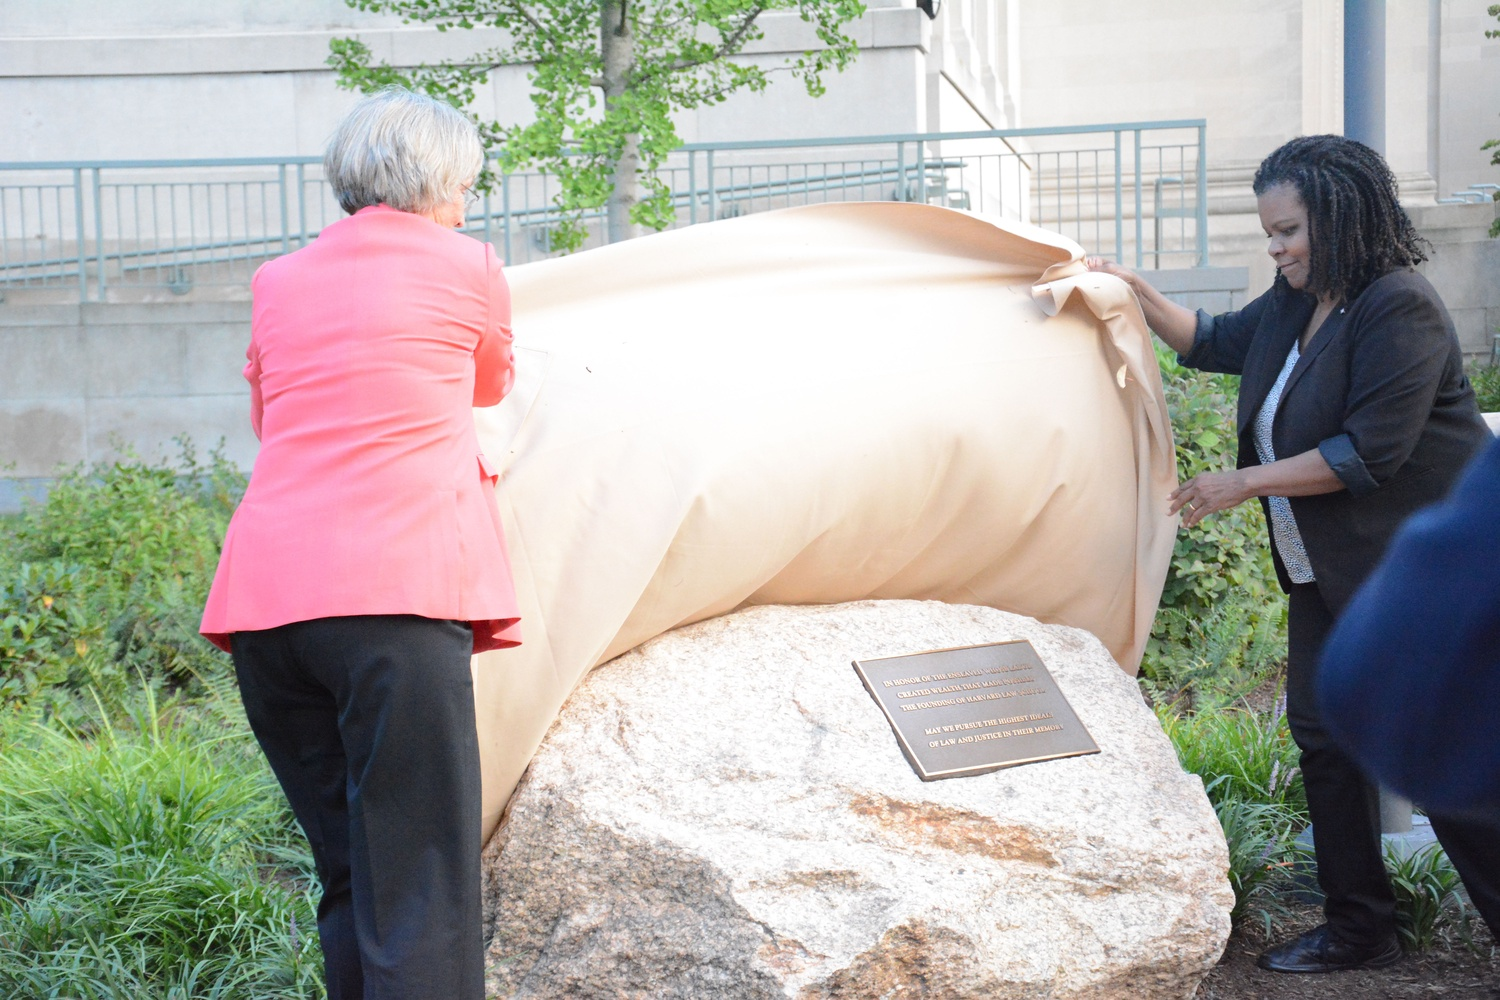 University President Drew G. Faust and Law School professor Annette Gordon-Reed unveil a monument commemorating the school's connections to slavery in 2017.